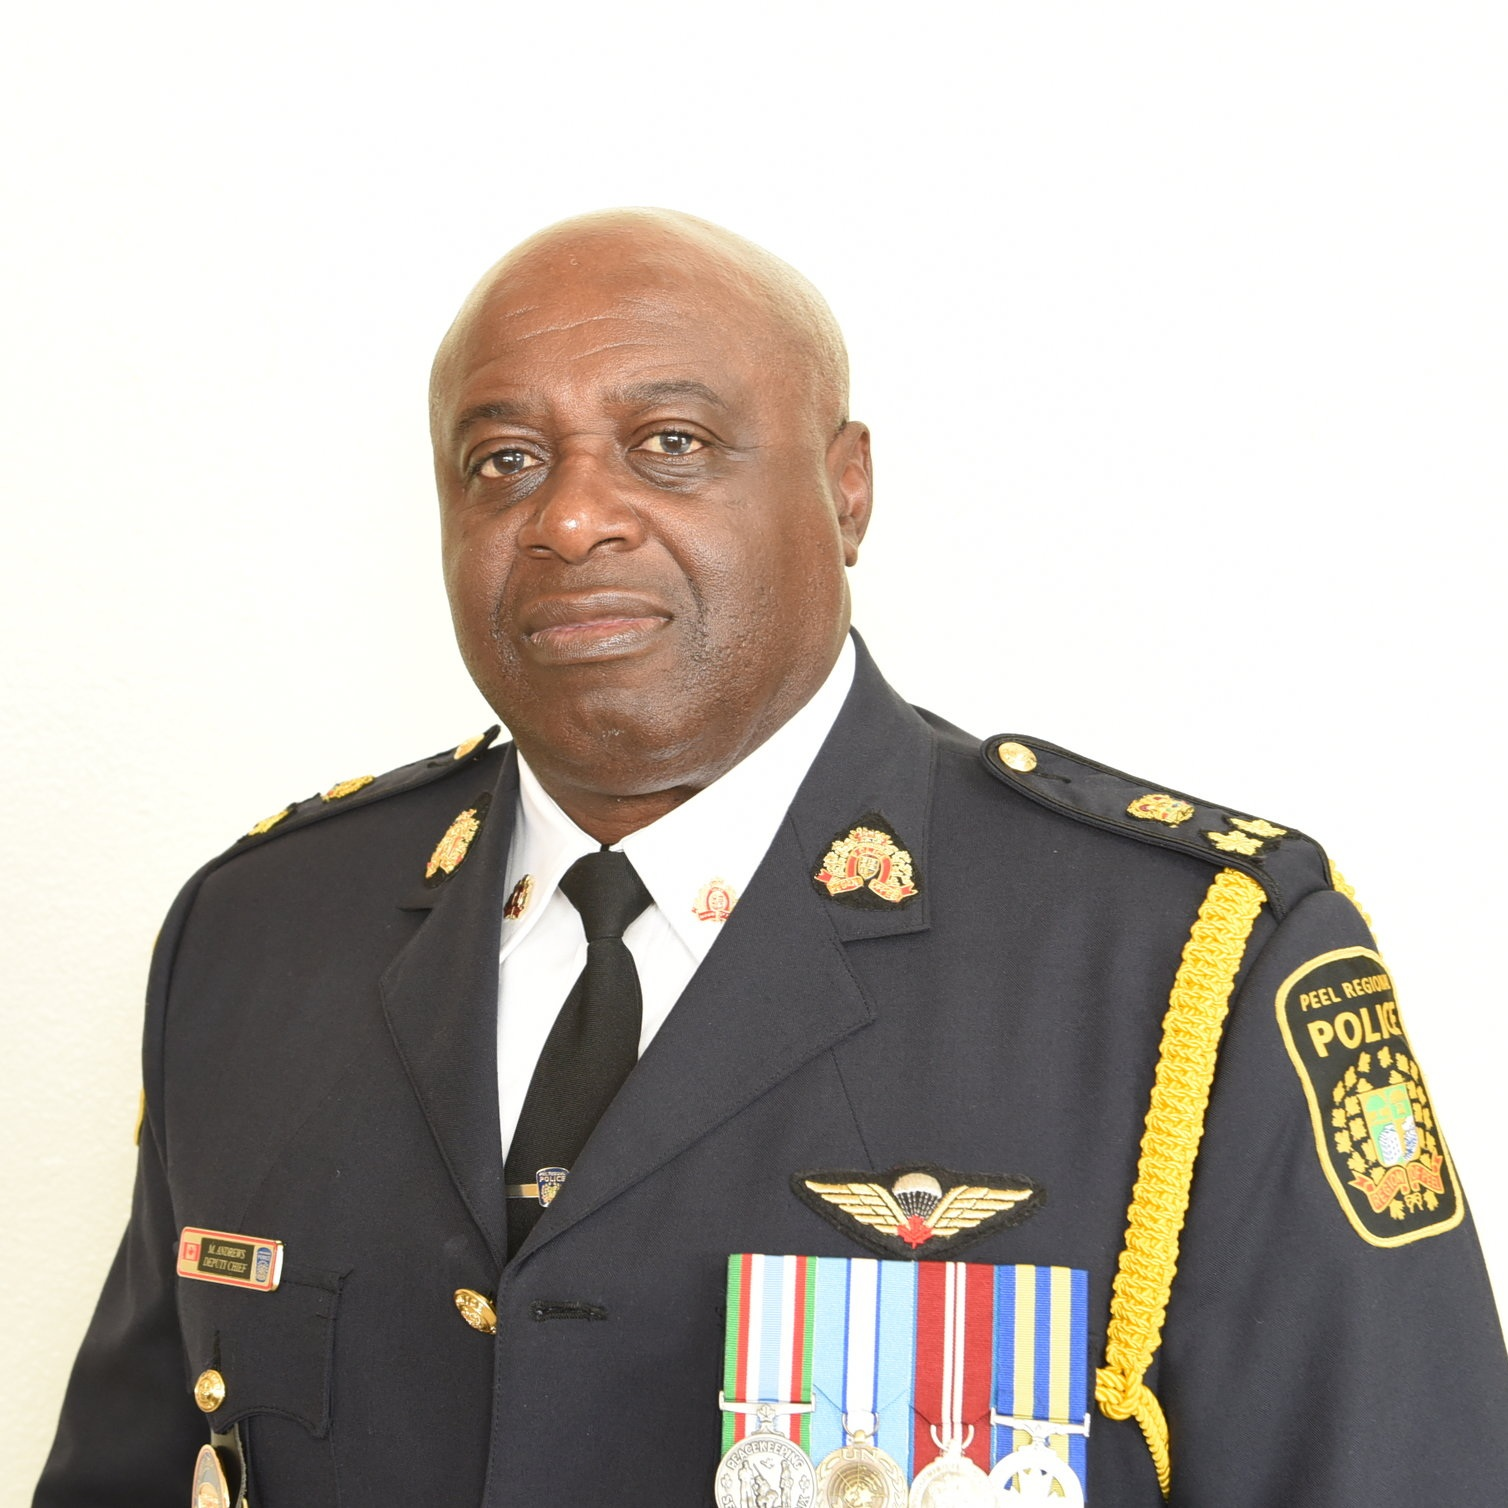 Peel Regional Police Deputy Chief Marc Andrews